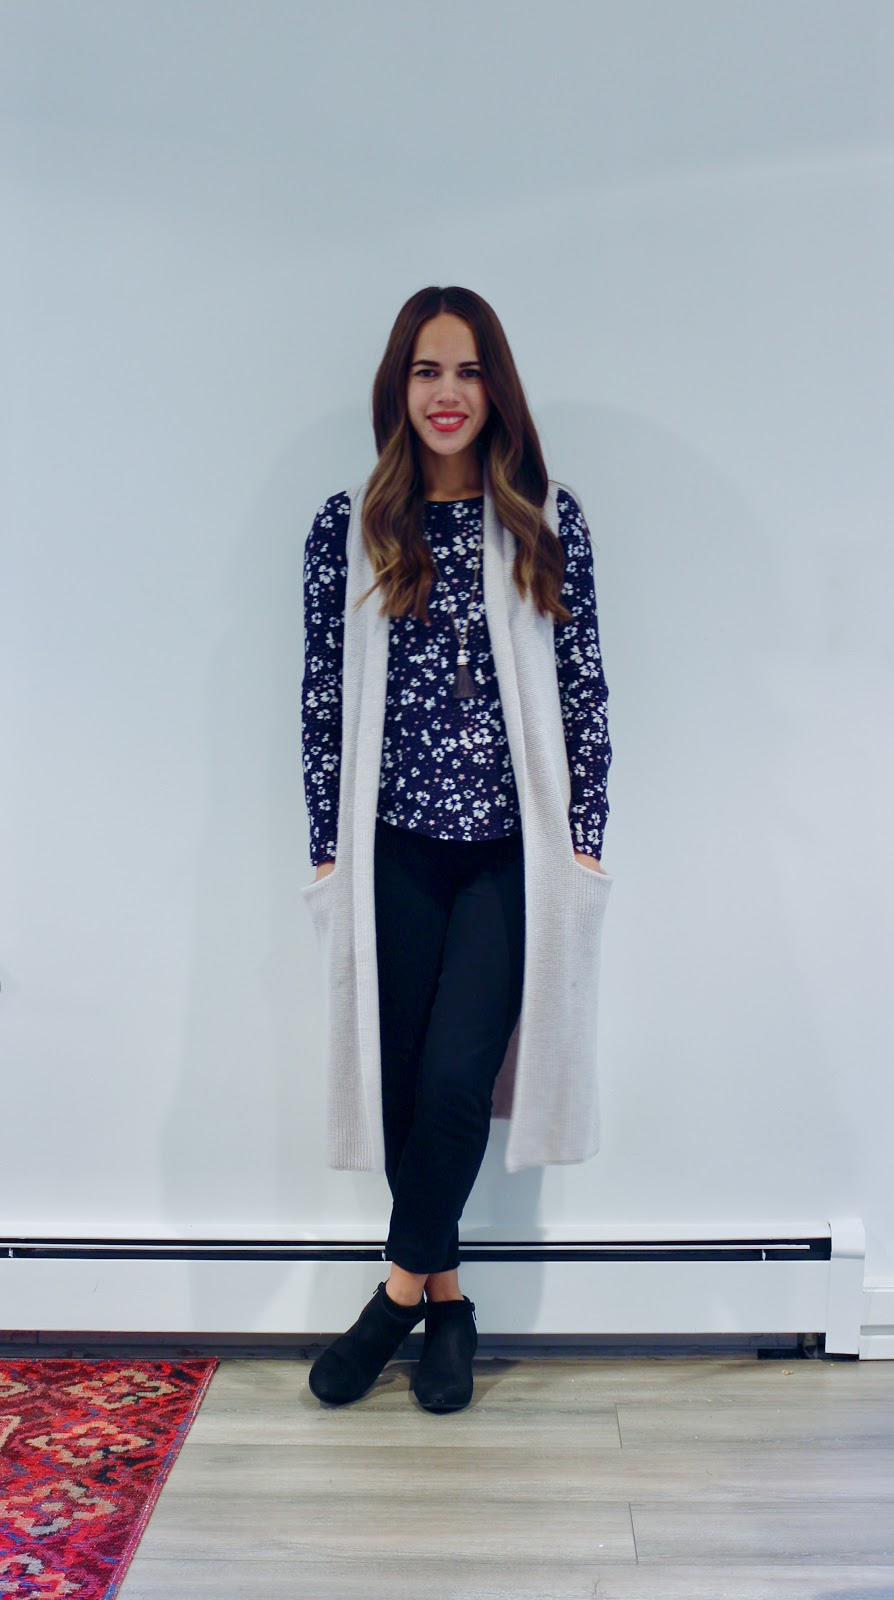 Jules in Flats - Floral Top with Knit Duster Vest (Business Casual Fall Workwear on a Budget)